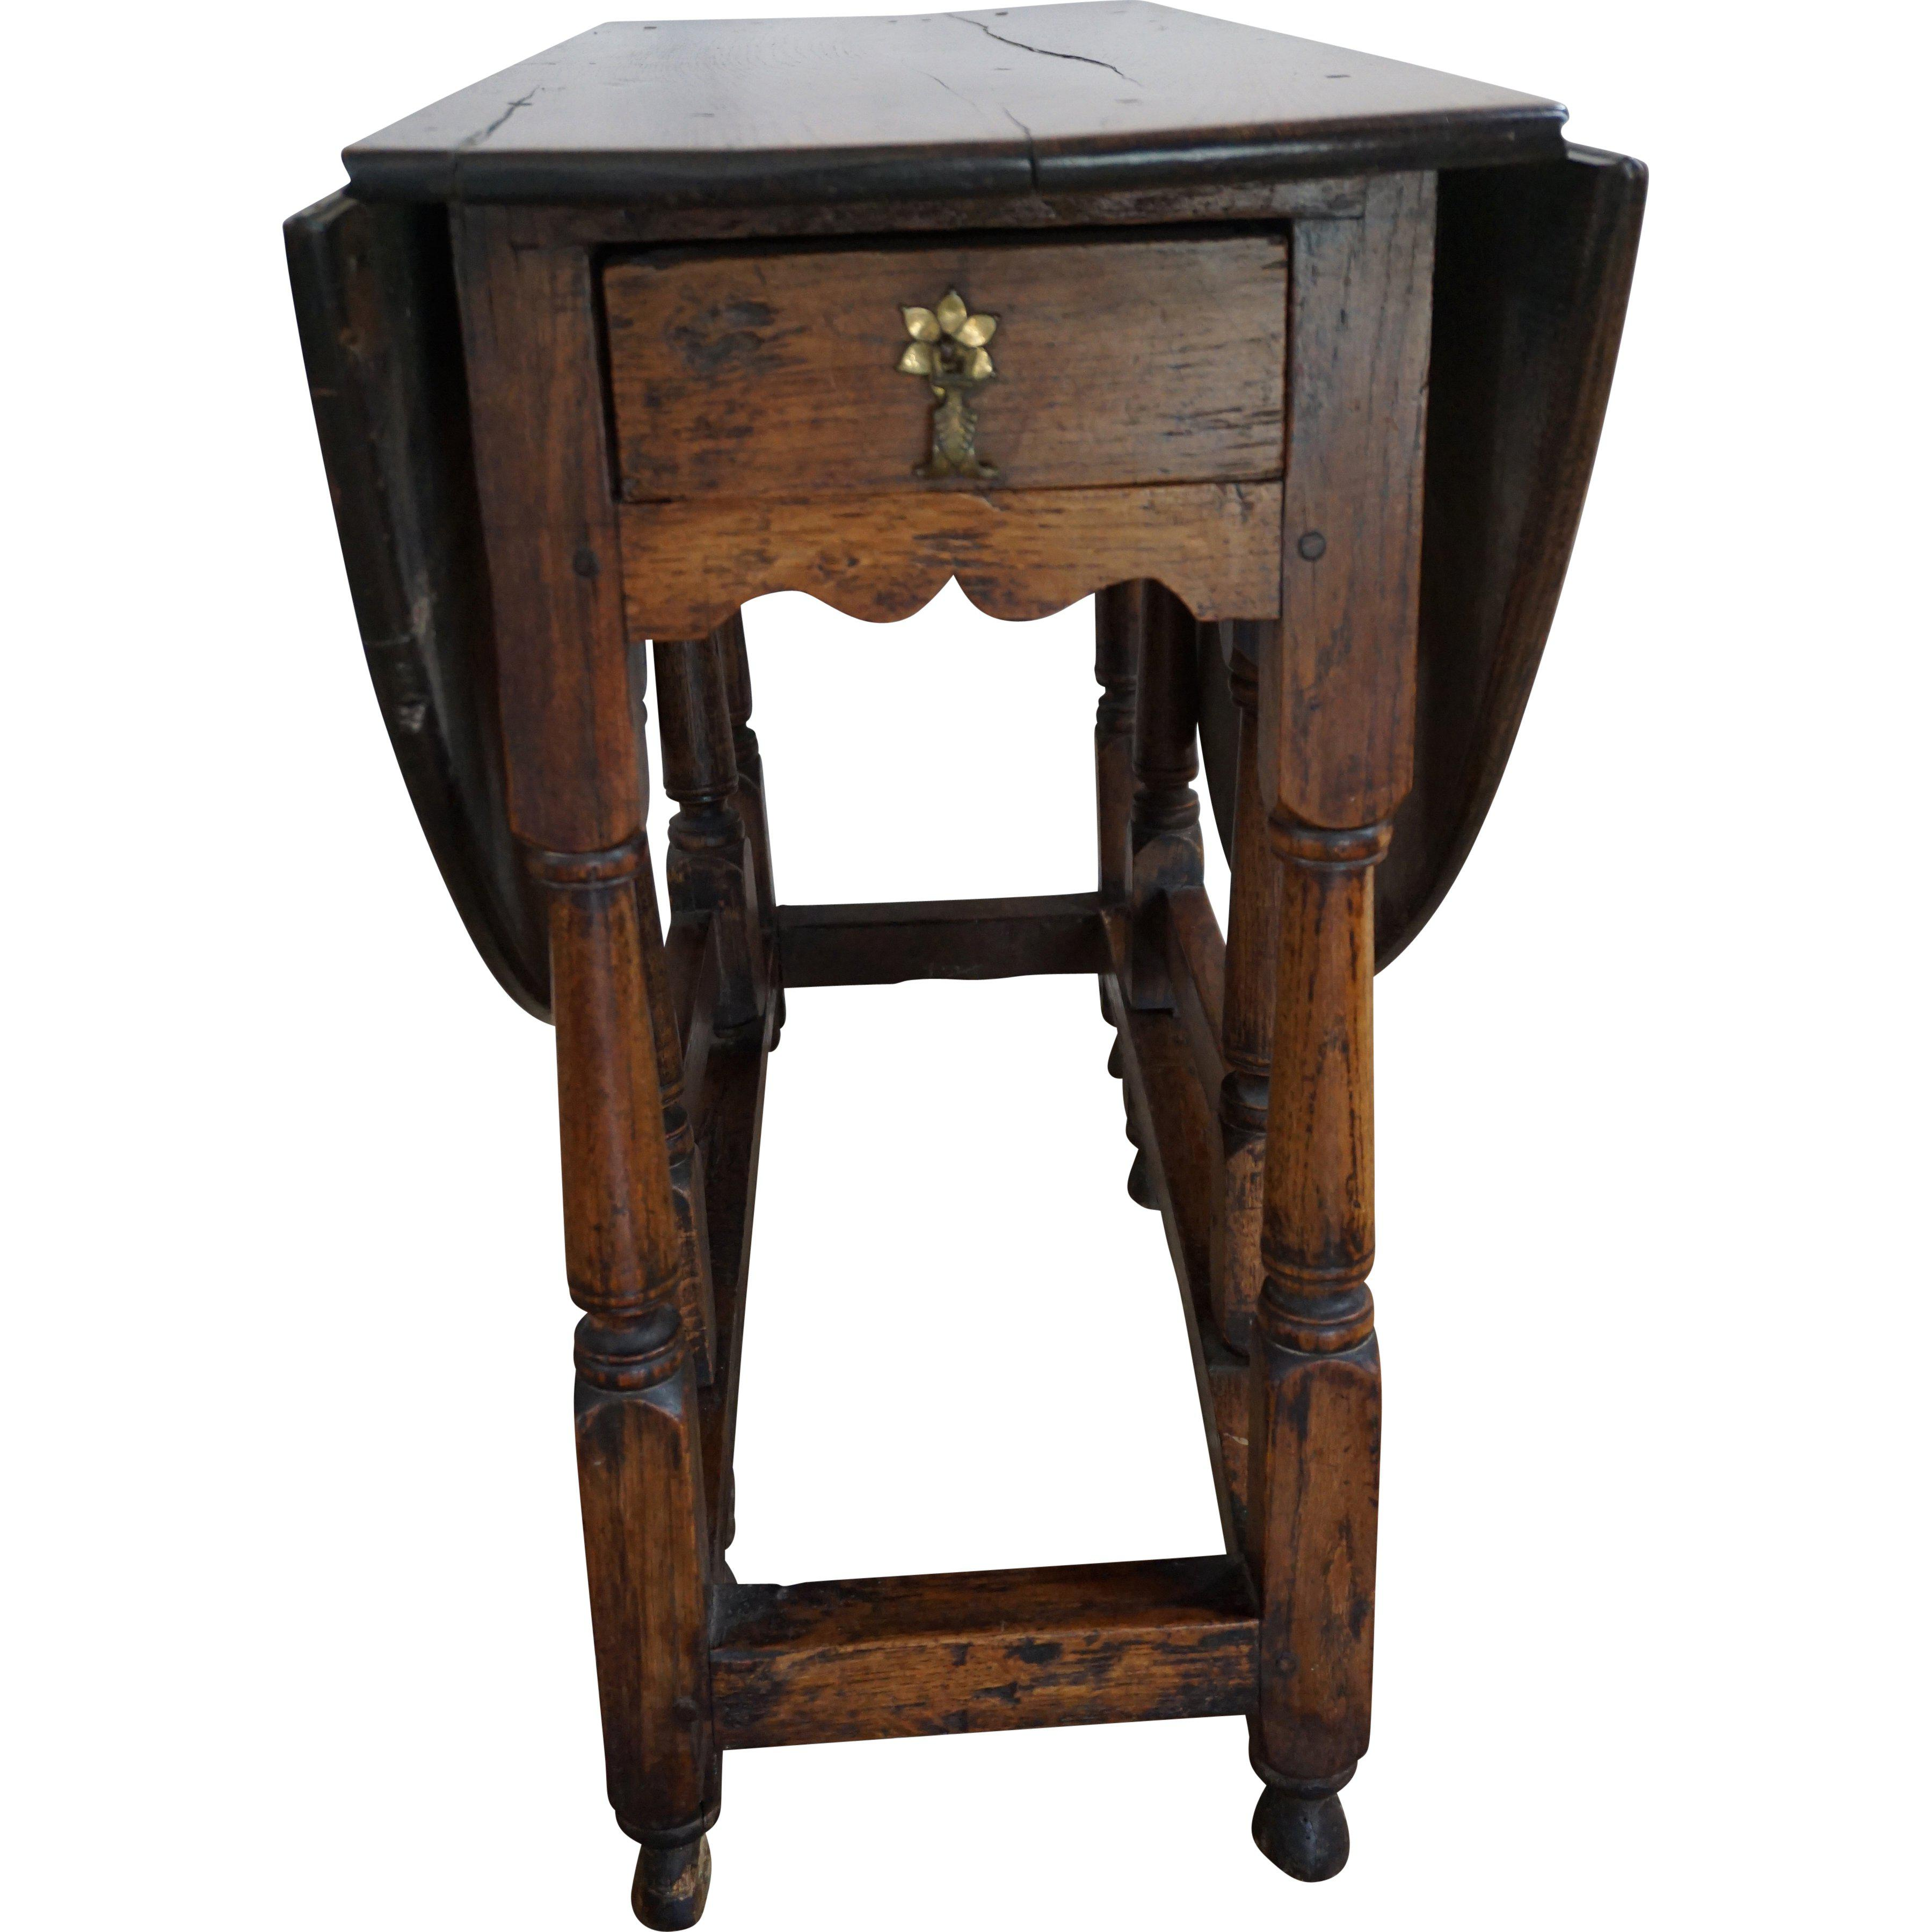 Details: Antique English Oak Drop Leaf Table Circa 1780. This Versatile  Table Features A